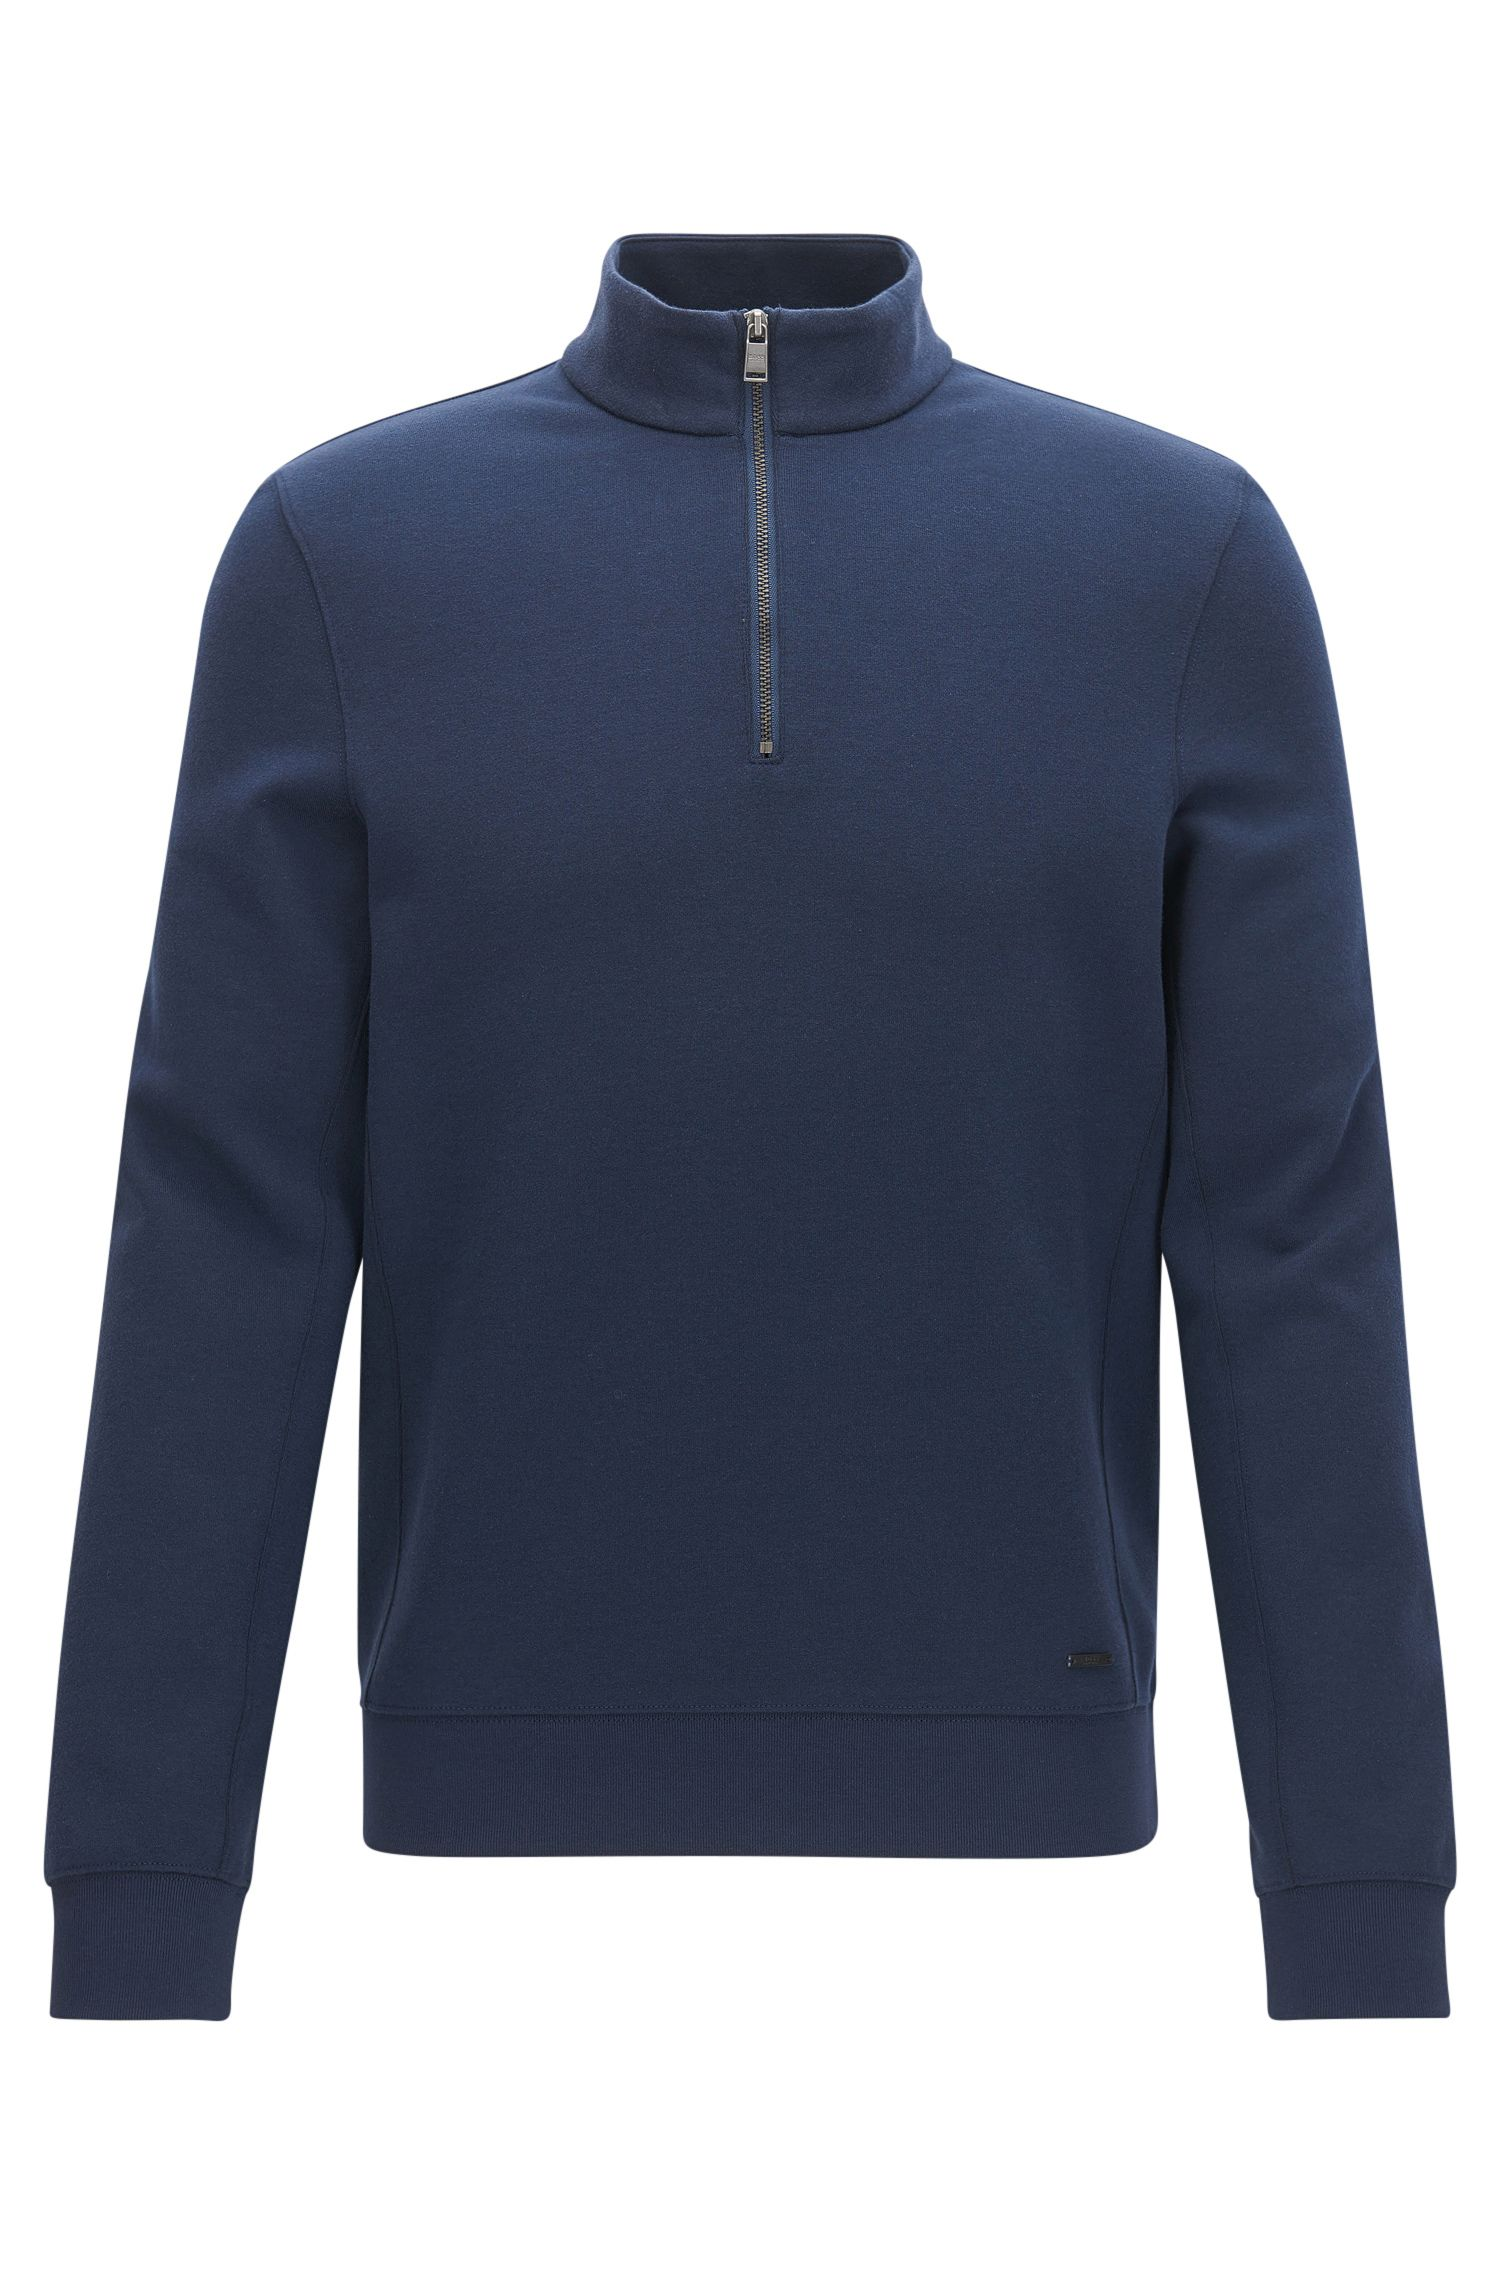 Slim-fit zip-neck sweatshirt in a cotton blend